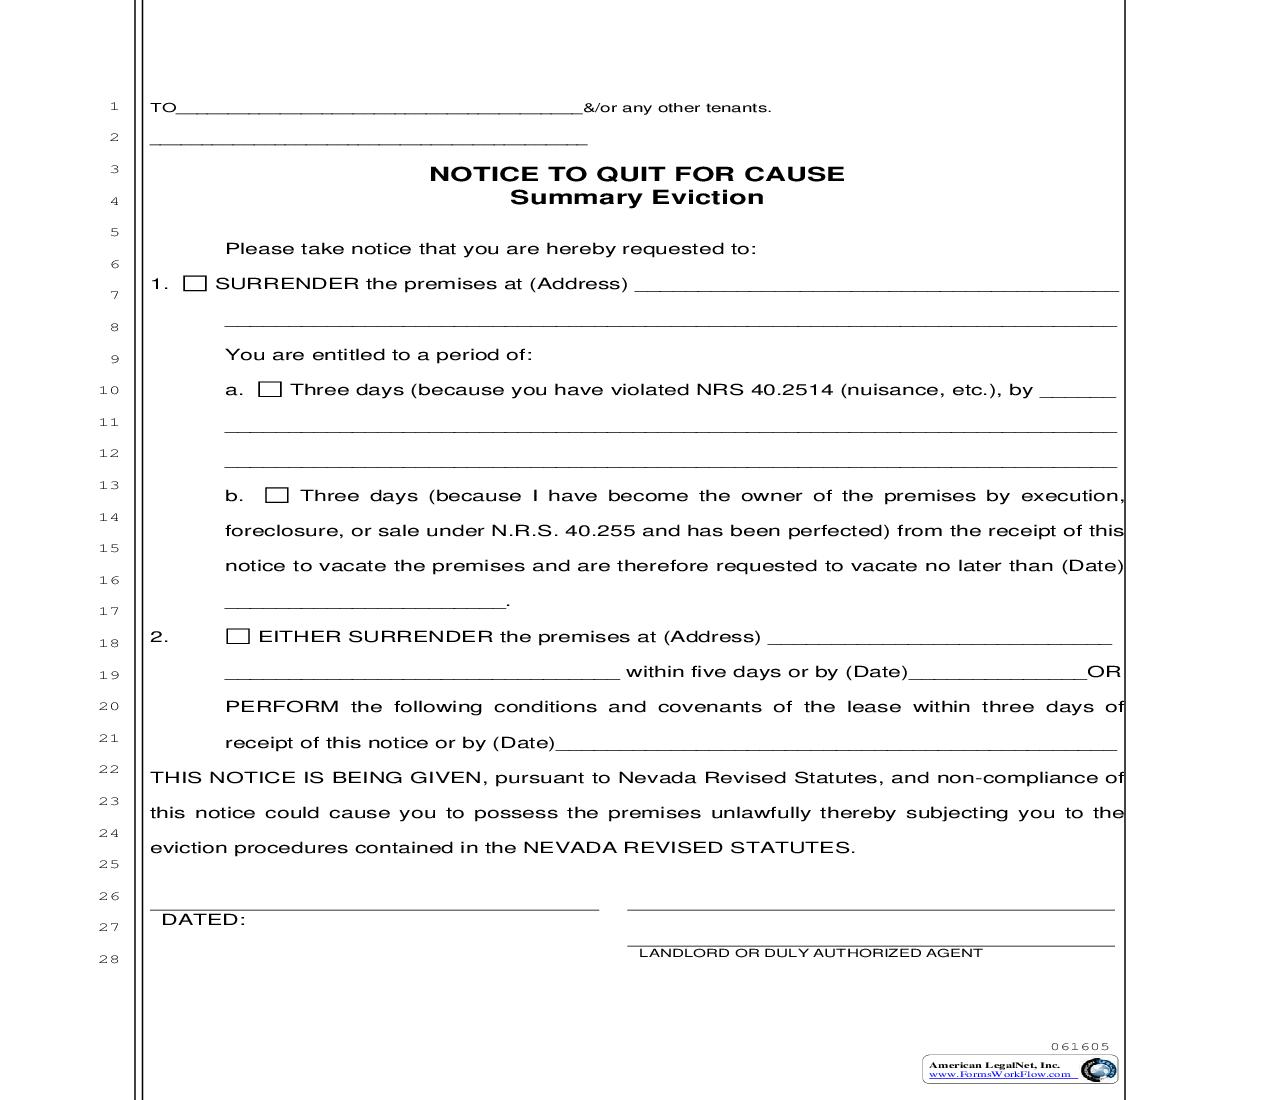 Notice To Quit For Cause - Summary Eviction   Pdf Fpdf Doc Docx   Nevada